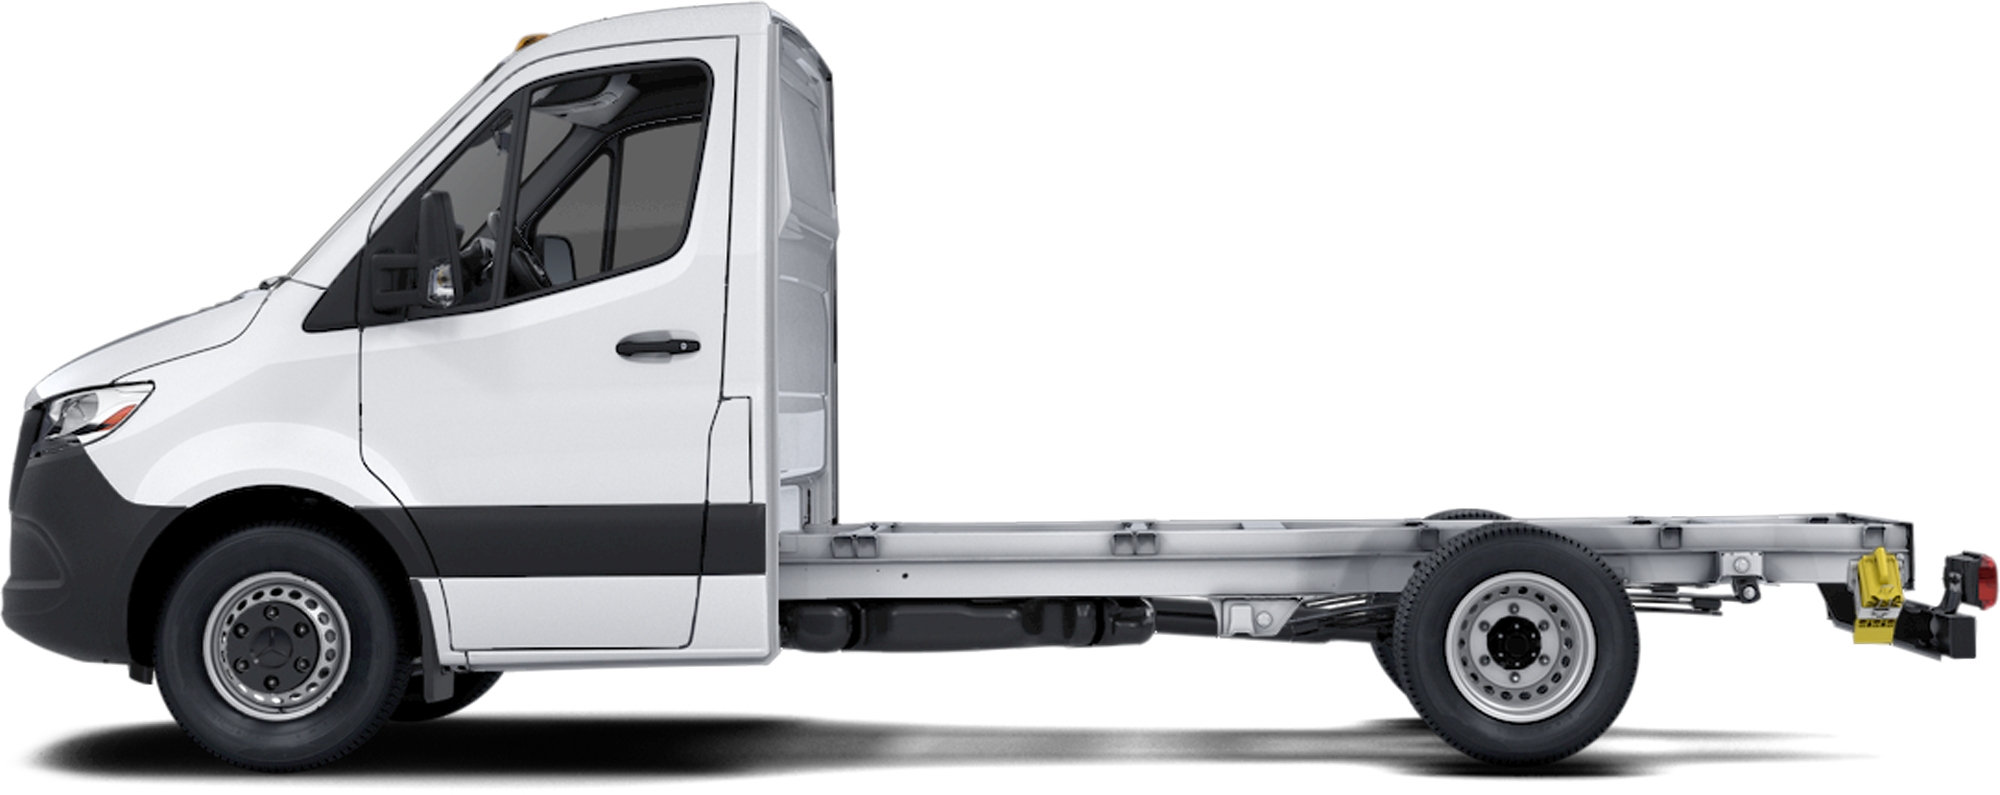 2020 Mercedes-Benz Sprinter 4500 Chassis Truck Standard Roof V6